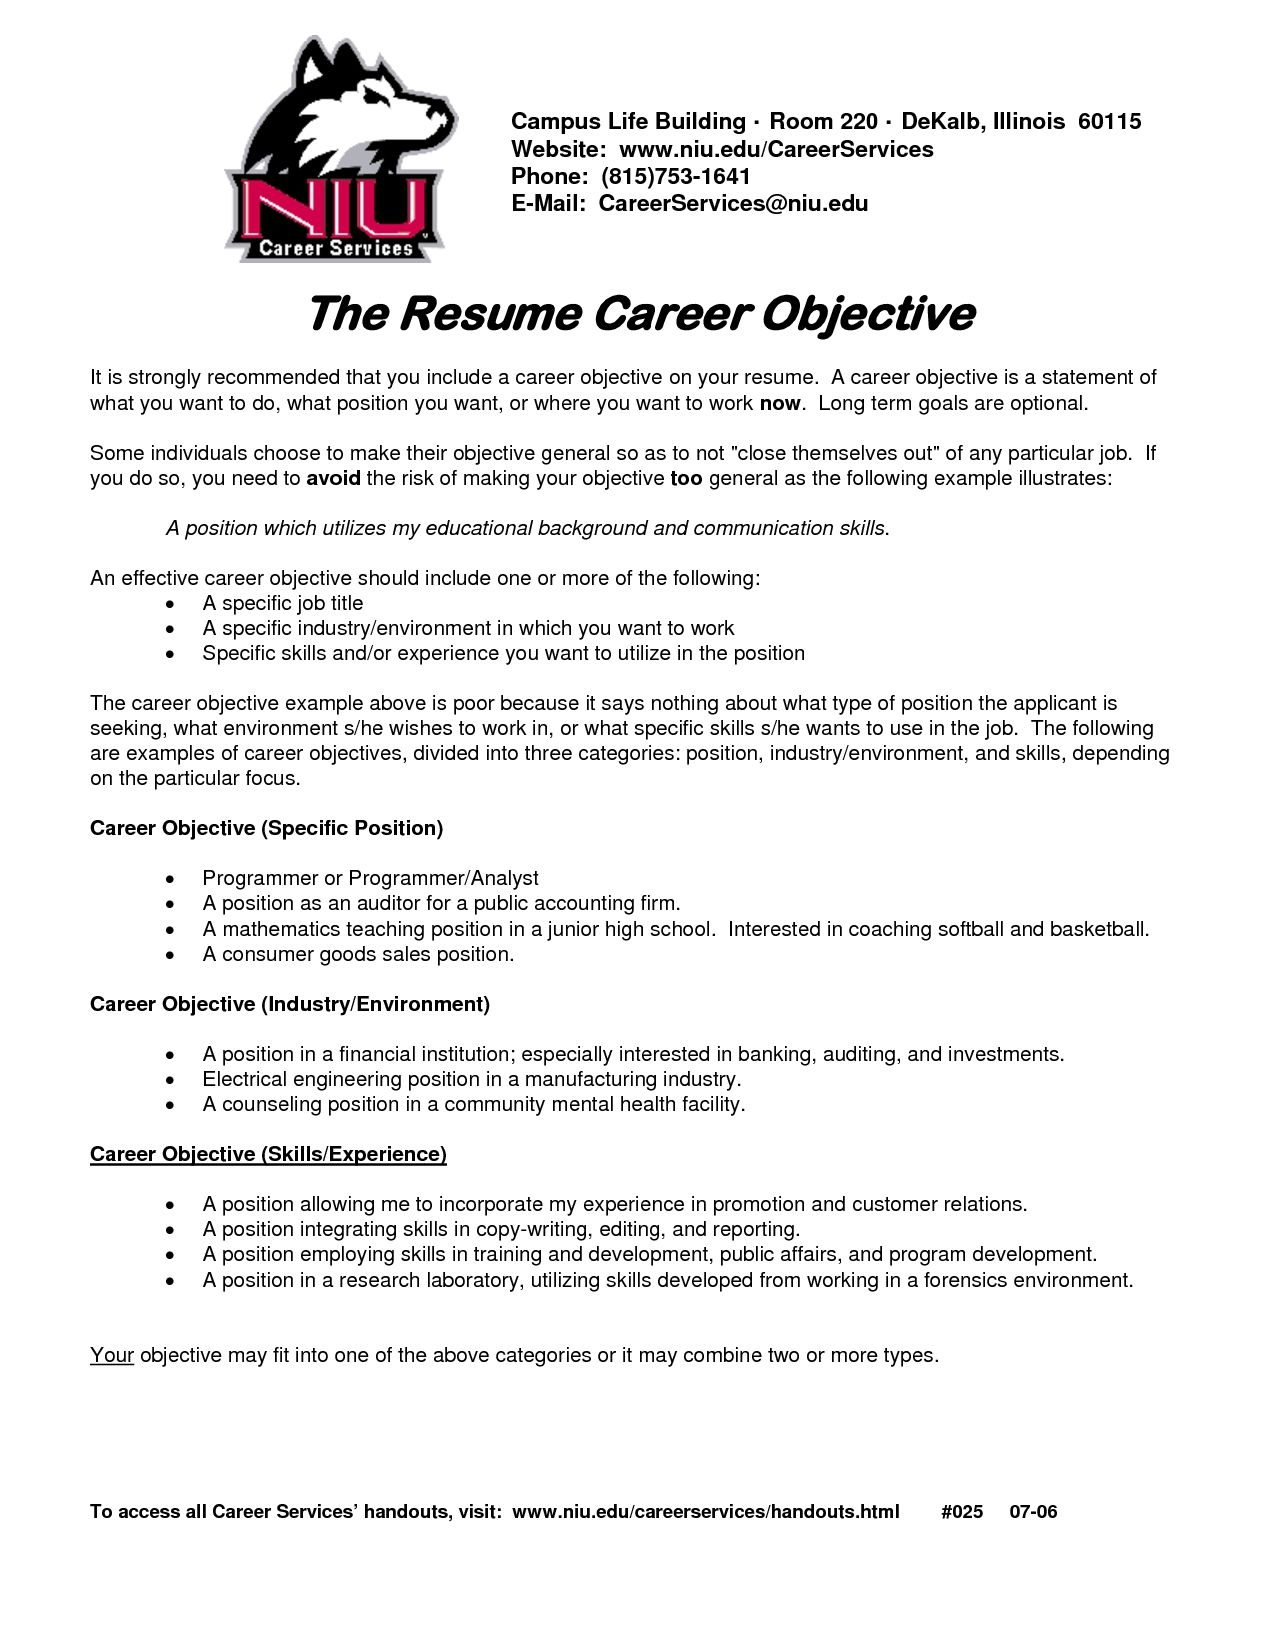 resume job goals examples objective for any career general proven tips good relationship Resume Good General Resume Objective Examples